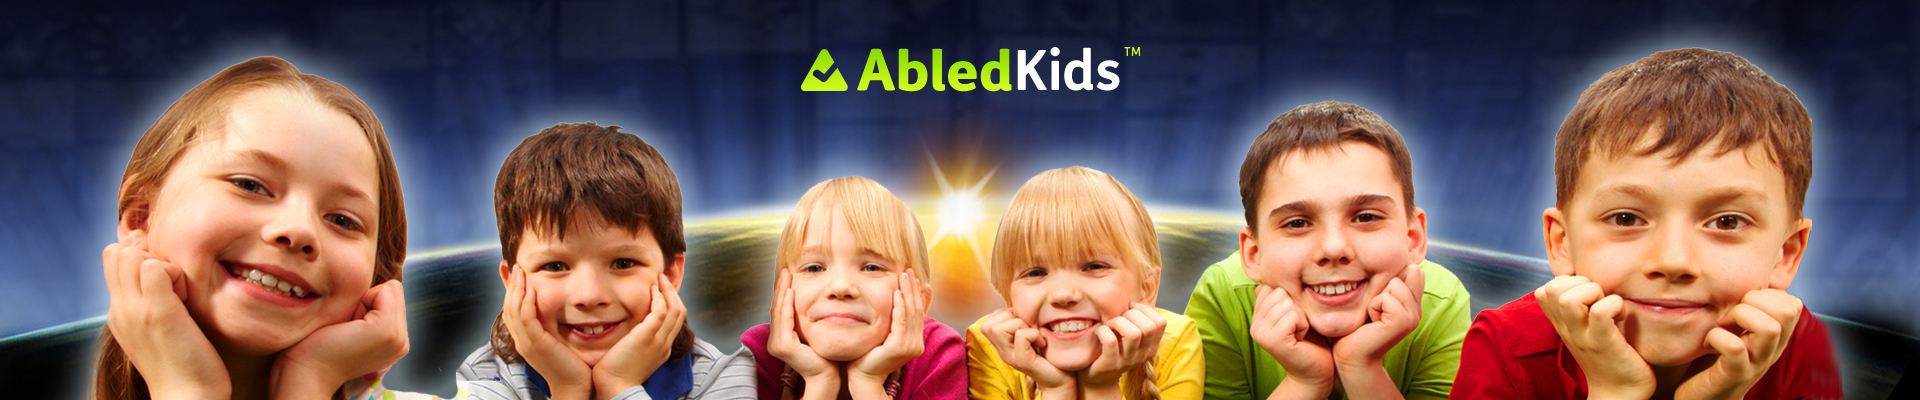 AbledKids Banner shows 6 children facing the camera lying on their bellies with their faces resting on their upturned hands